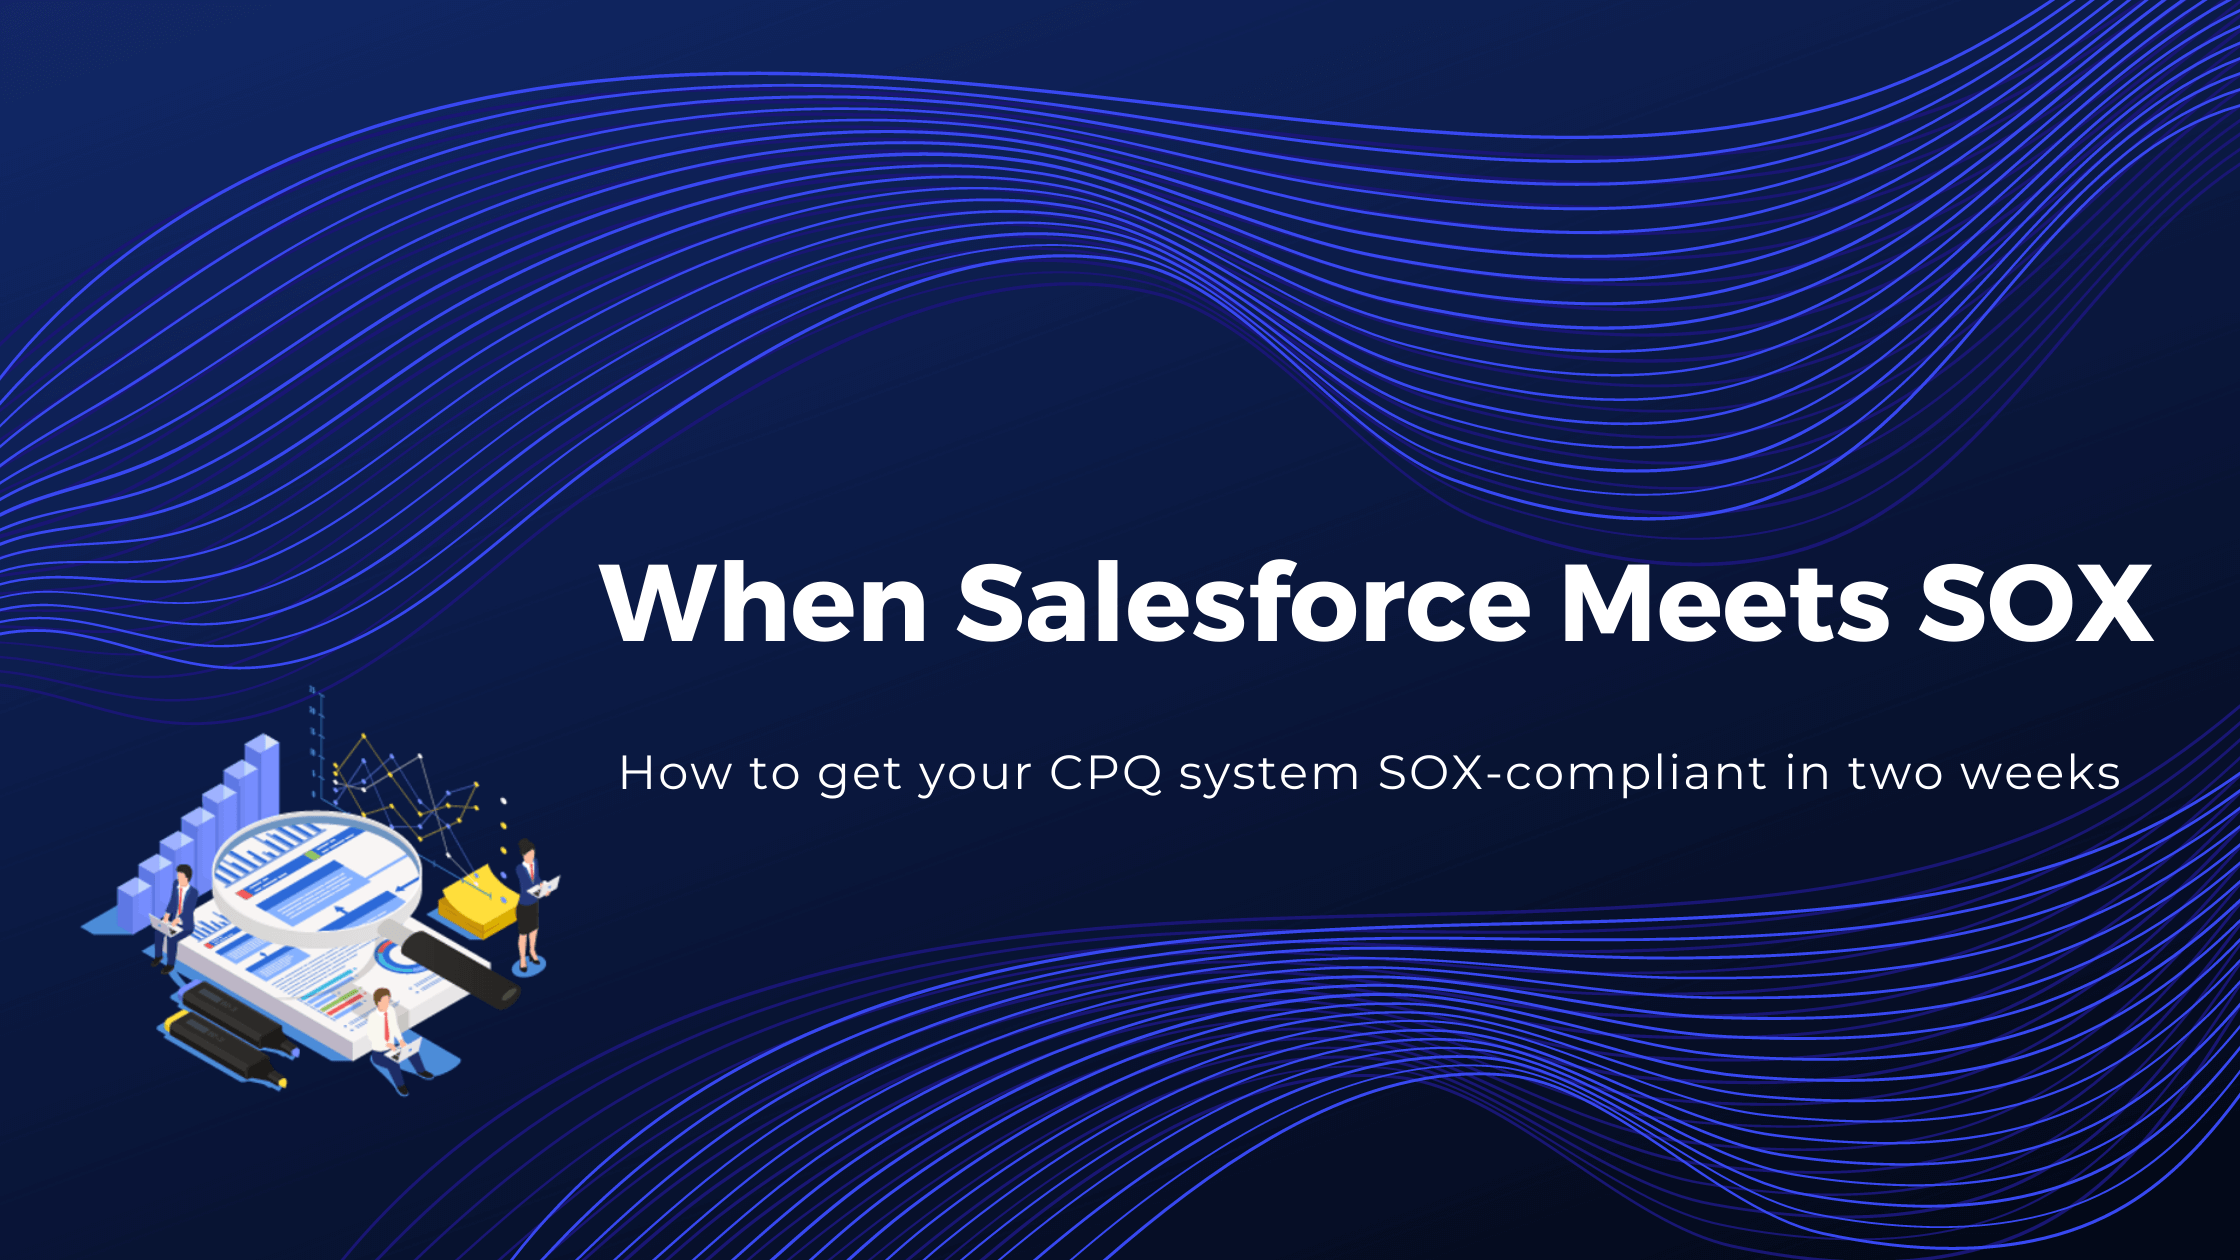 How to get your CPQ system SOX-compliant in two weeks